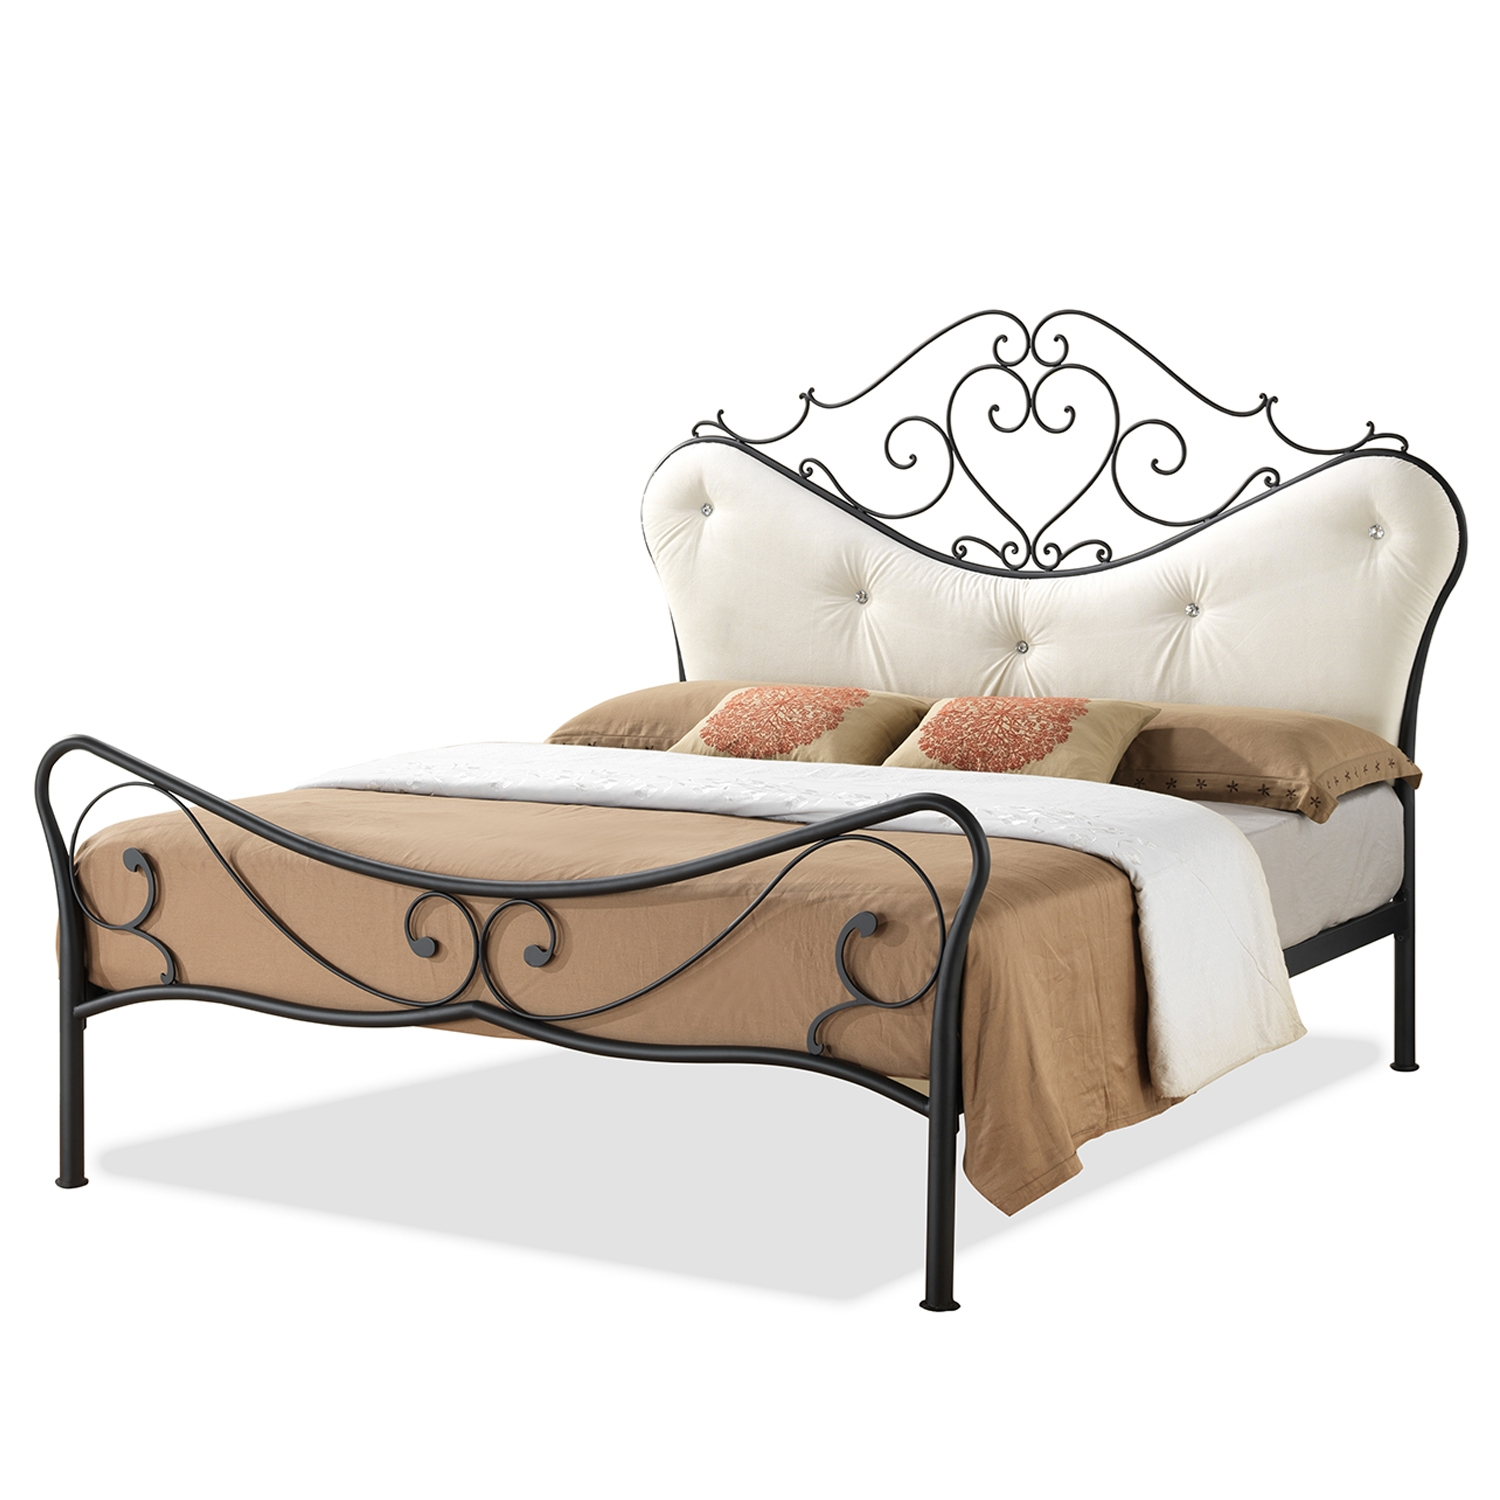 headboard bed frame metal eflyg beds painting twin gold